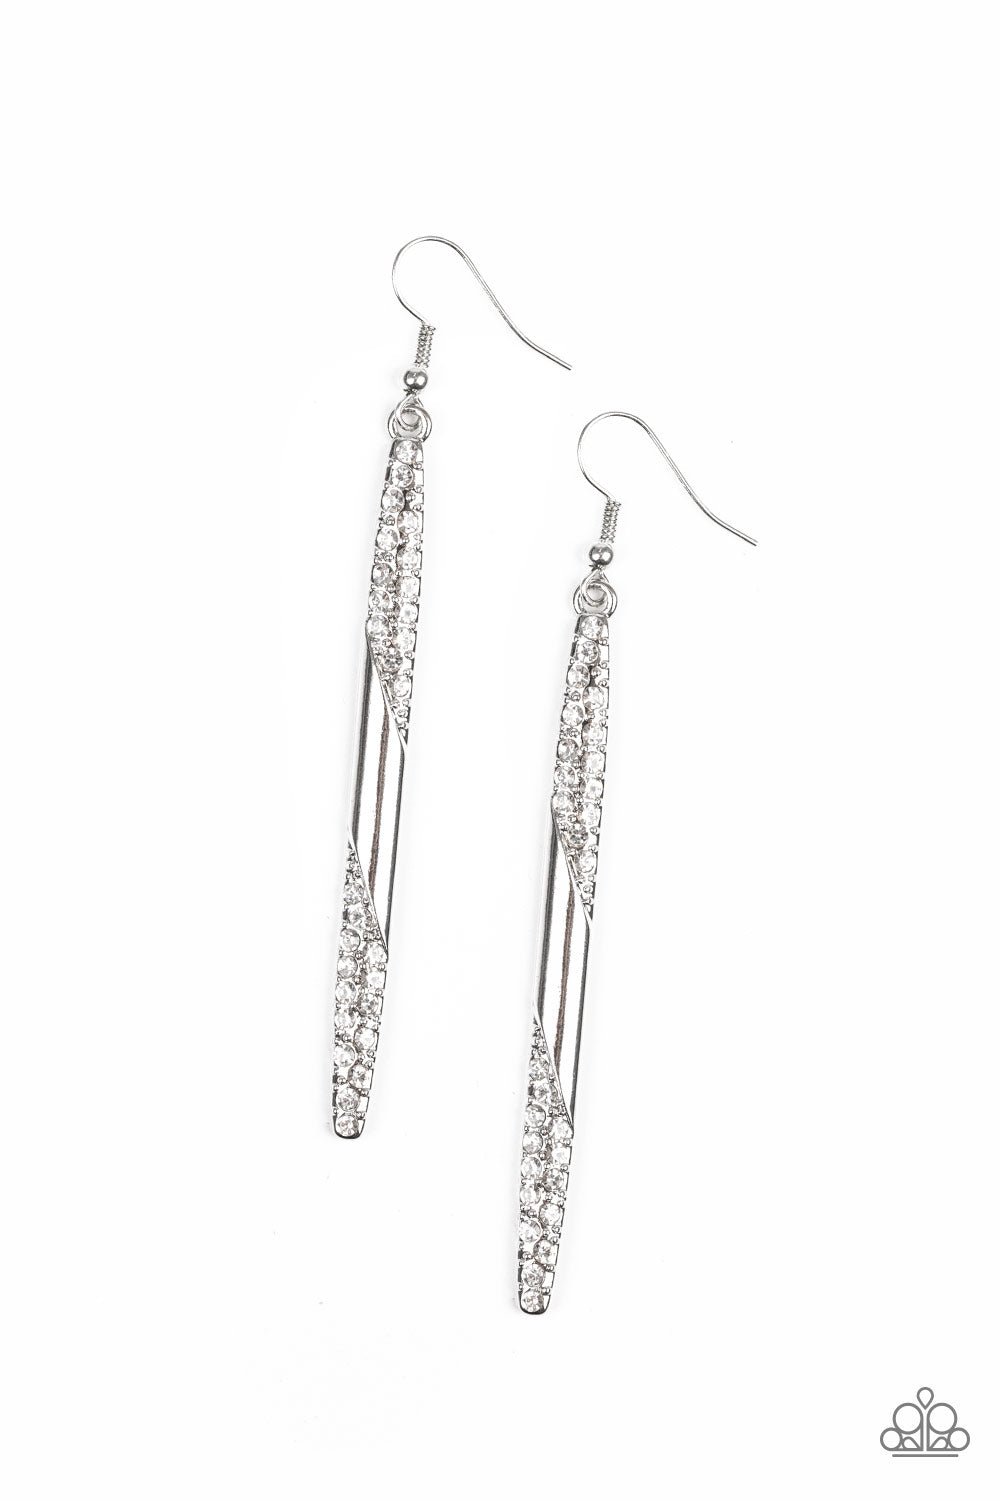 Award Show Attitude Earrings - Jo Glam Boutique